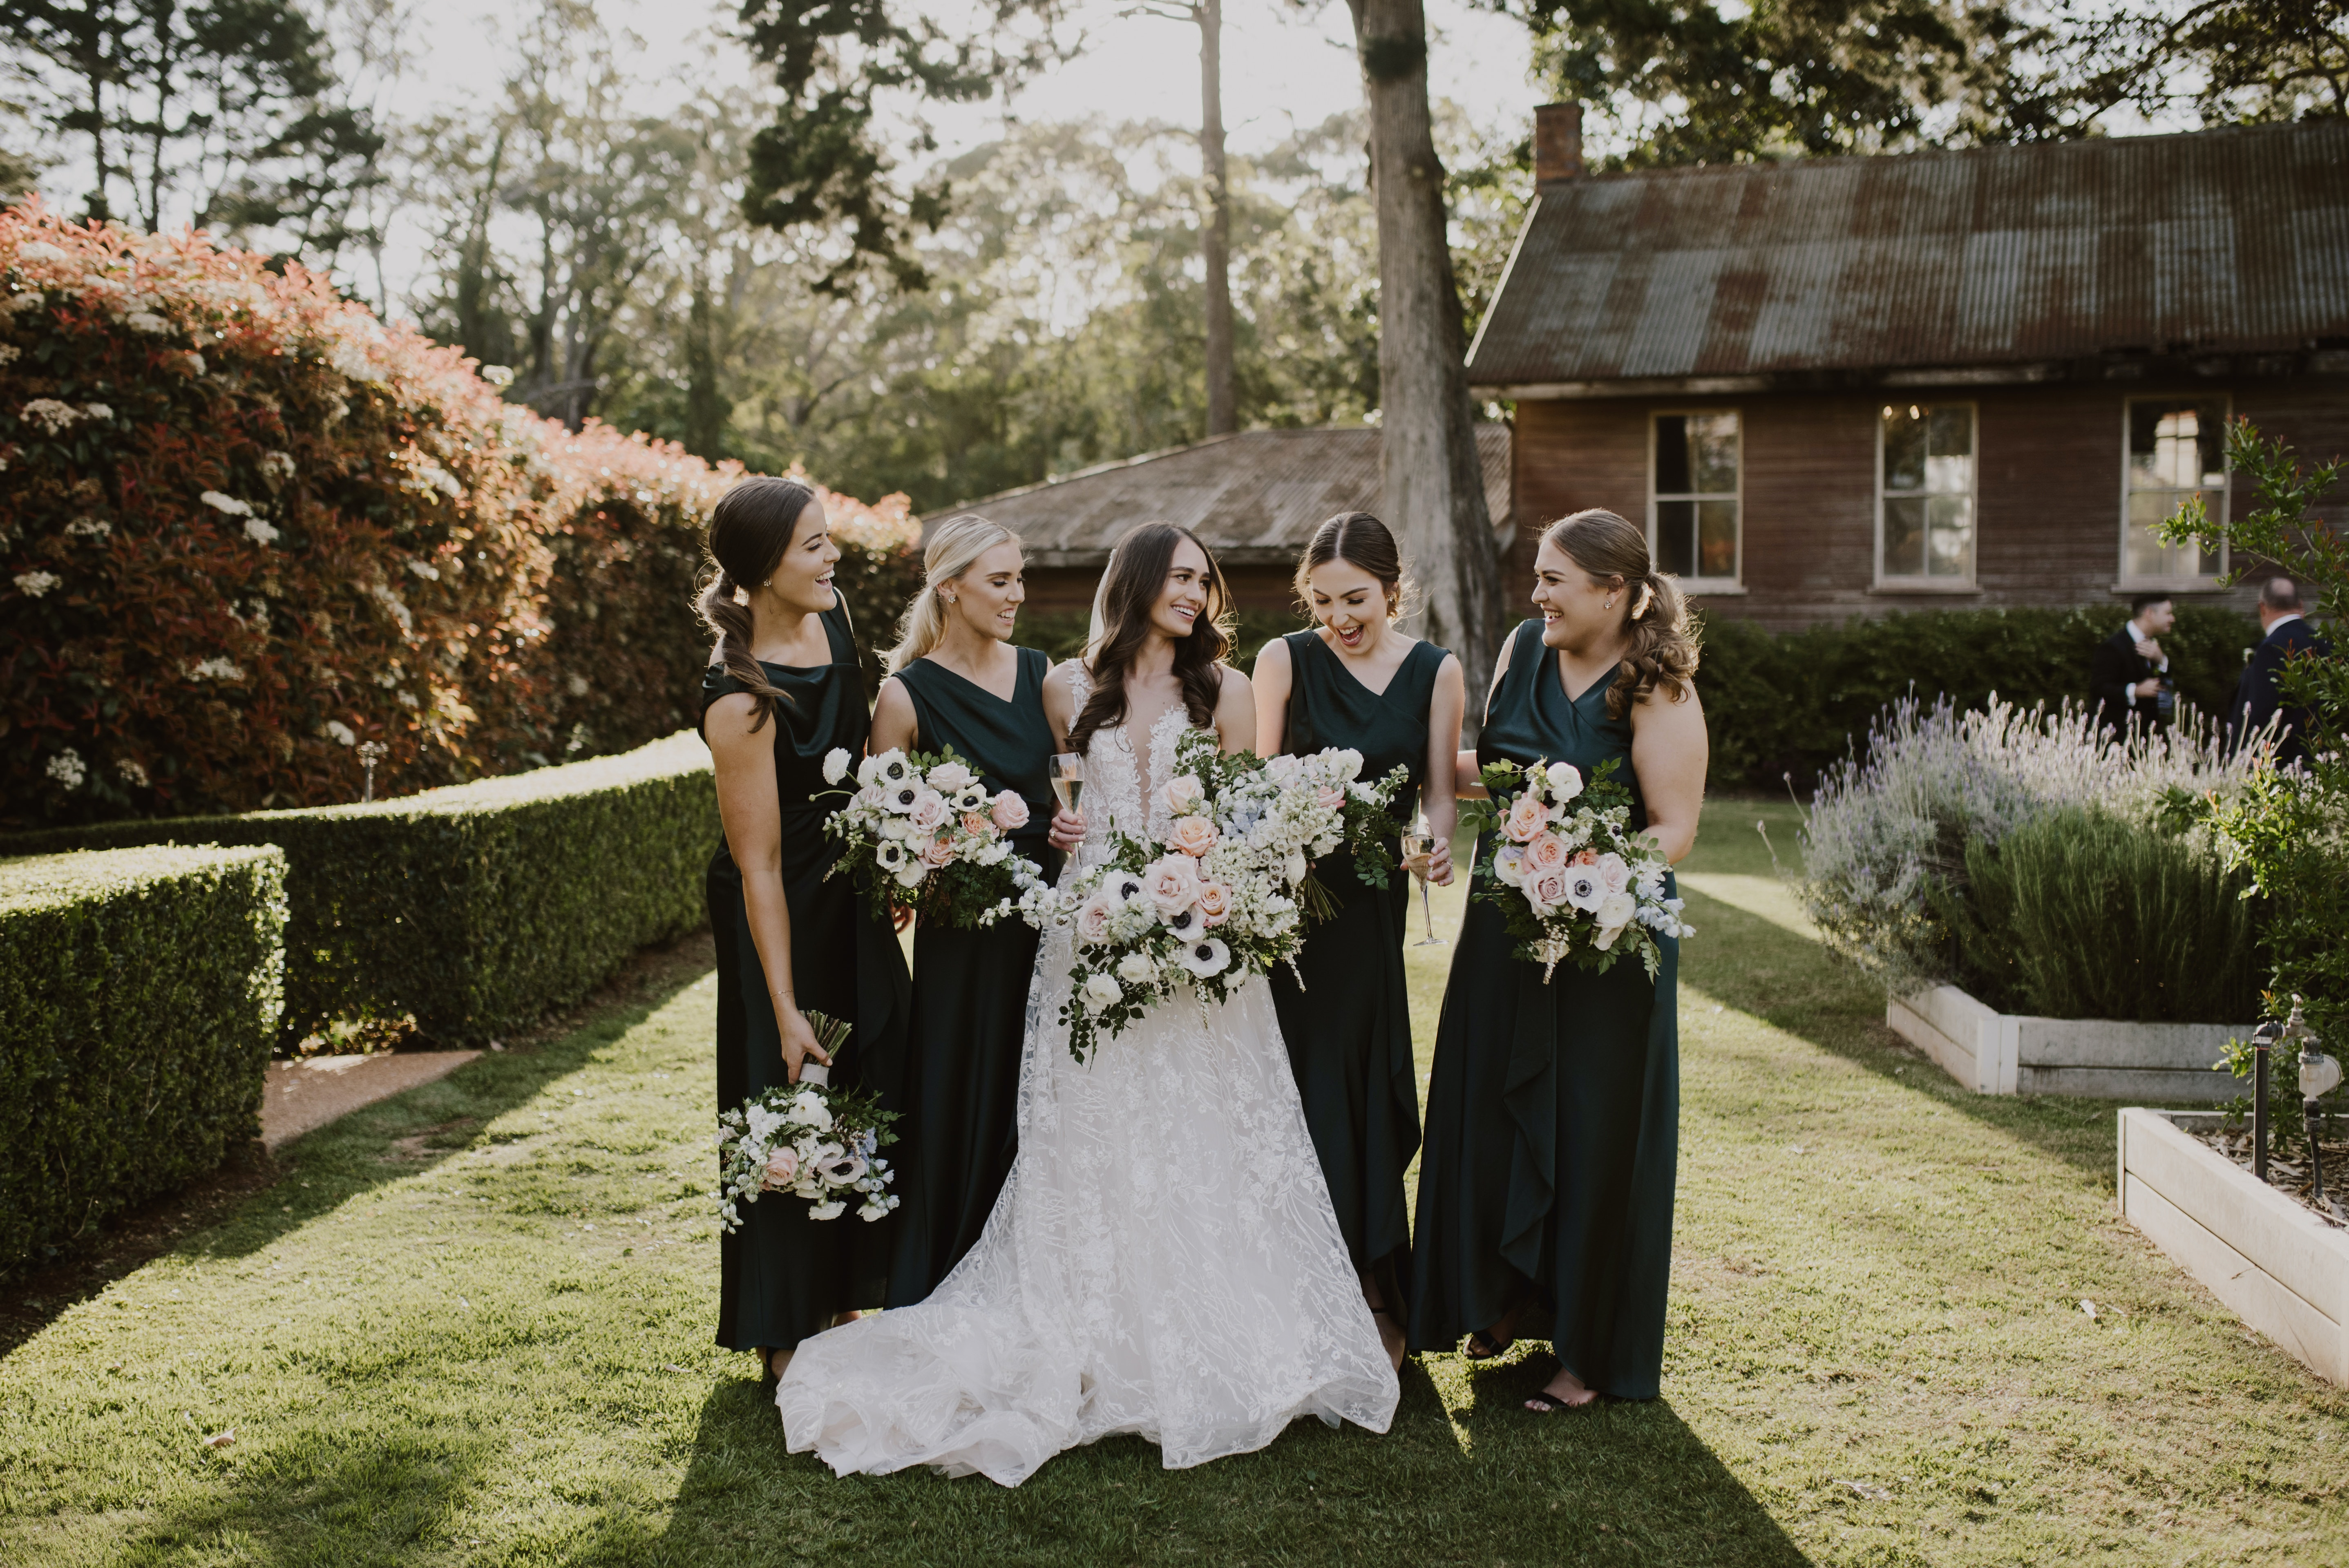 Bride with her bridesmaids in dark green dresses